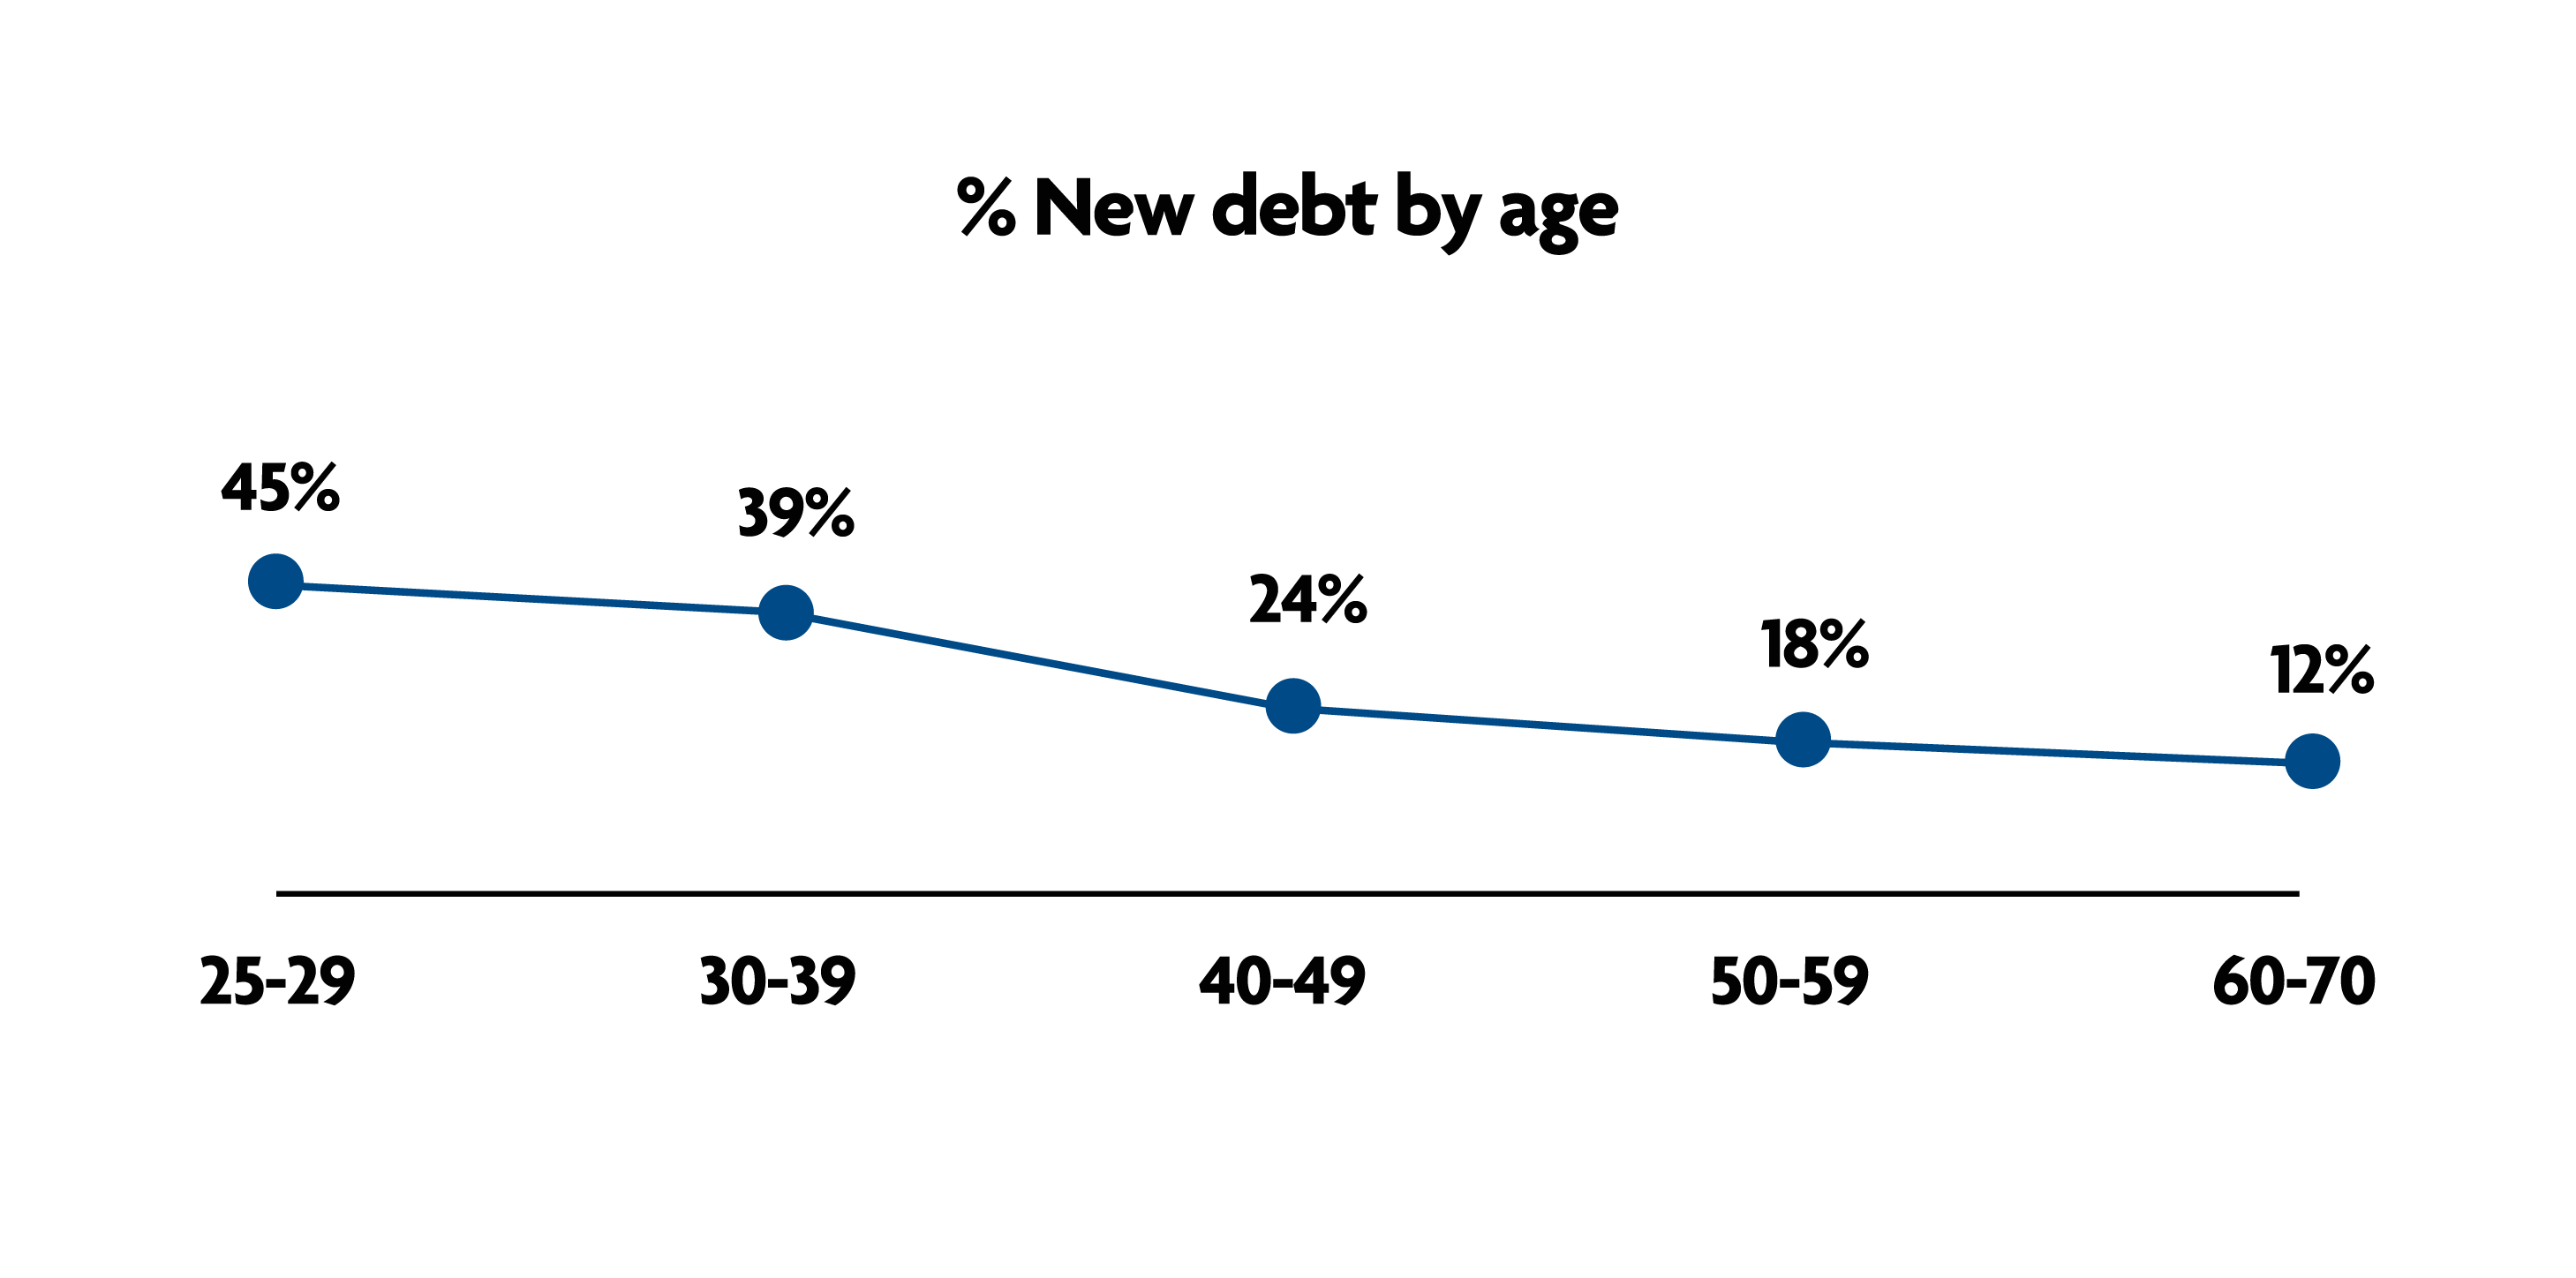 New debt - 45% of 25-29 year olds and 39% for 30-35 took on new debt. Only 12% for 60-70 year olds